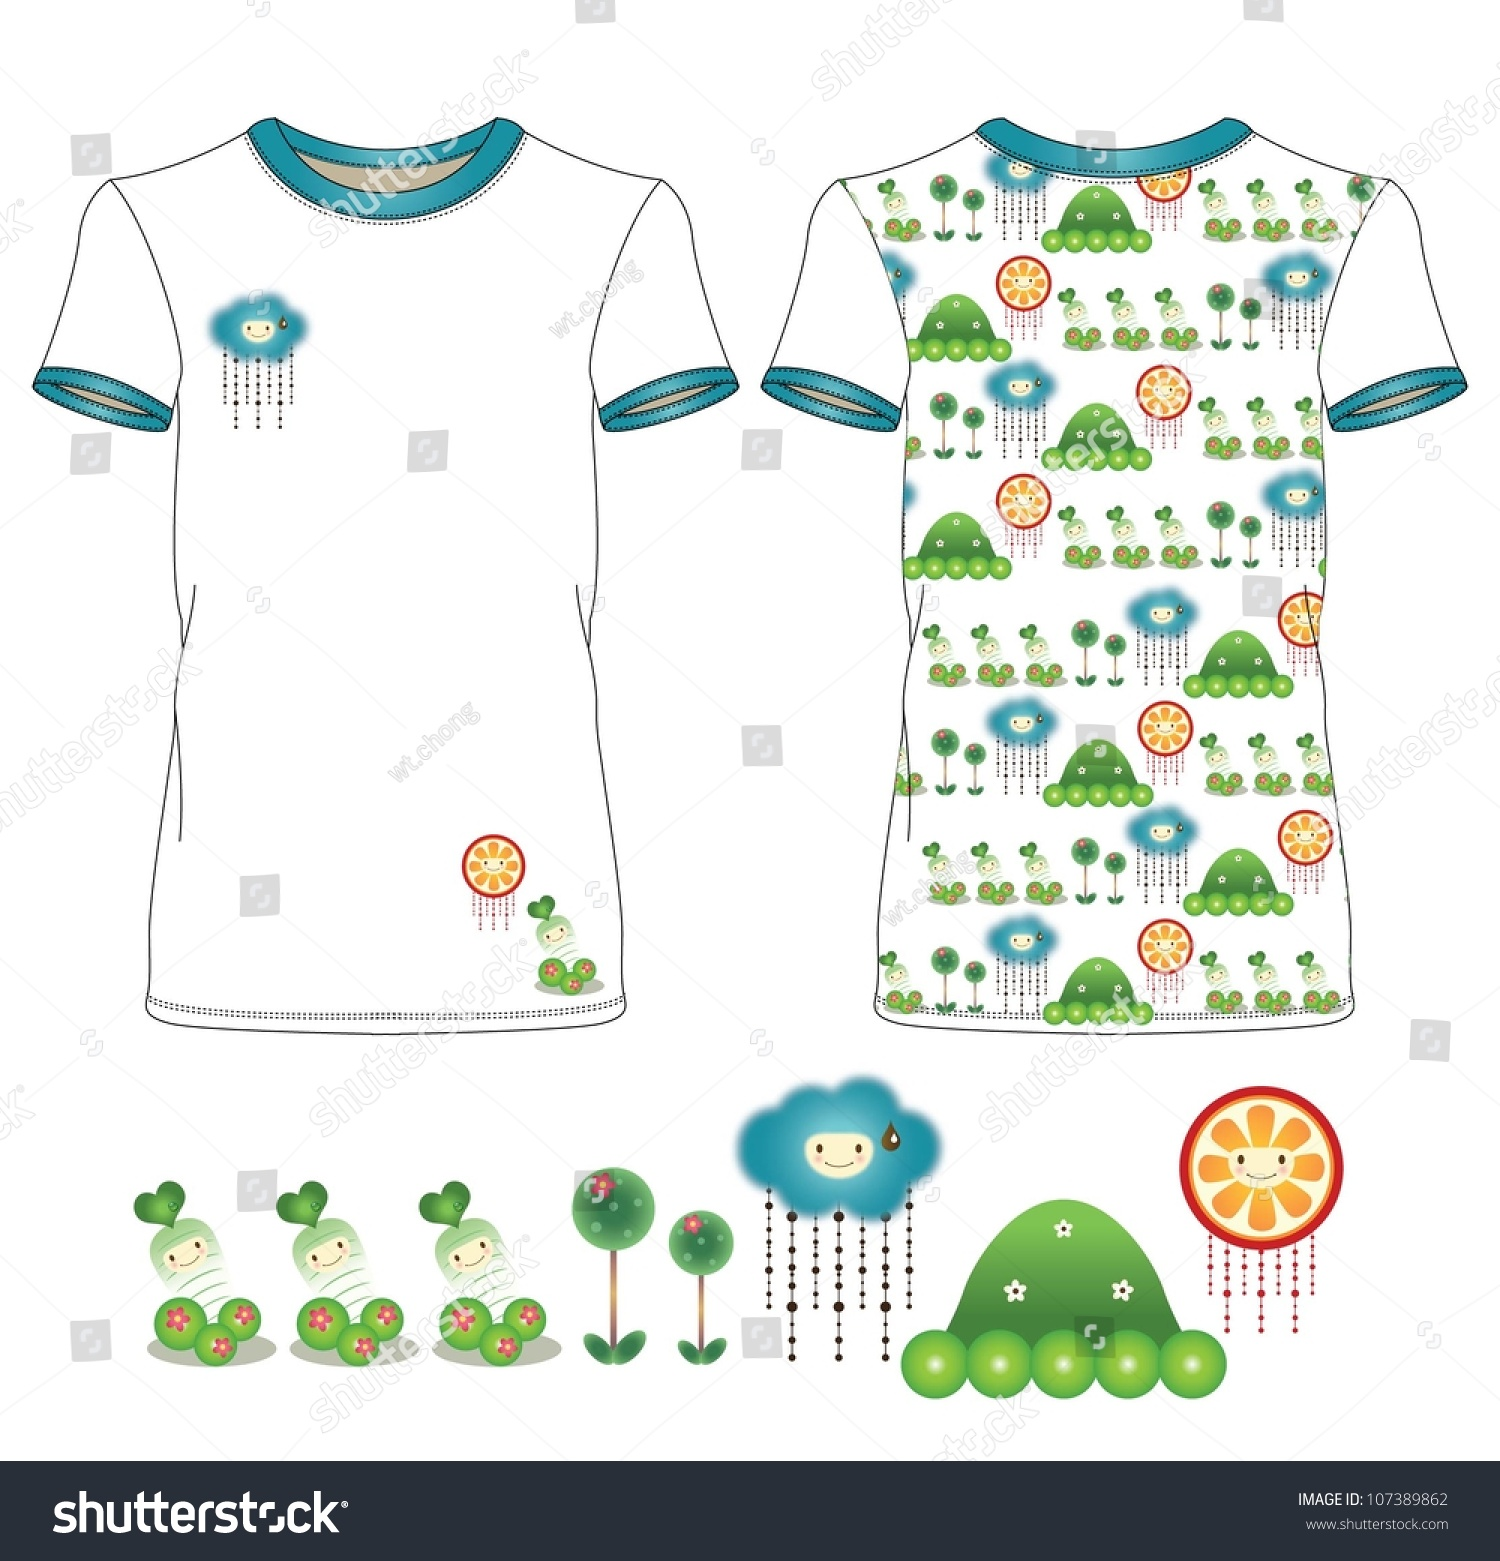 Casual sweet garden t shirt design stock vector for Garden t shirt designs